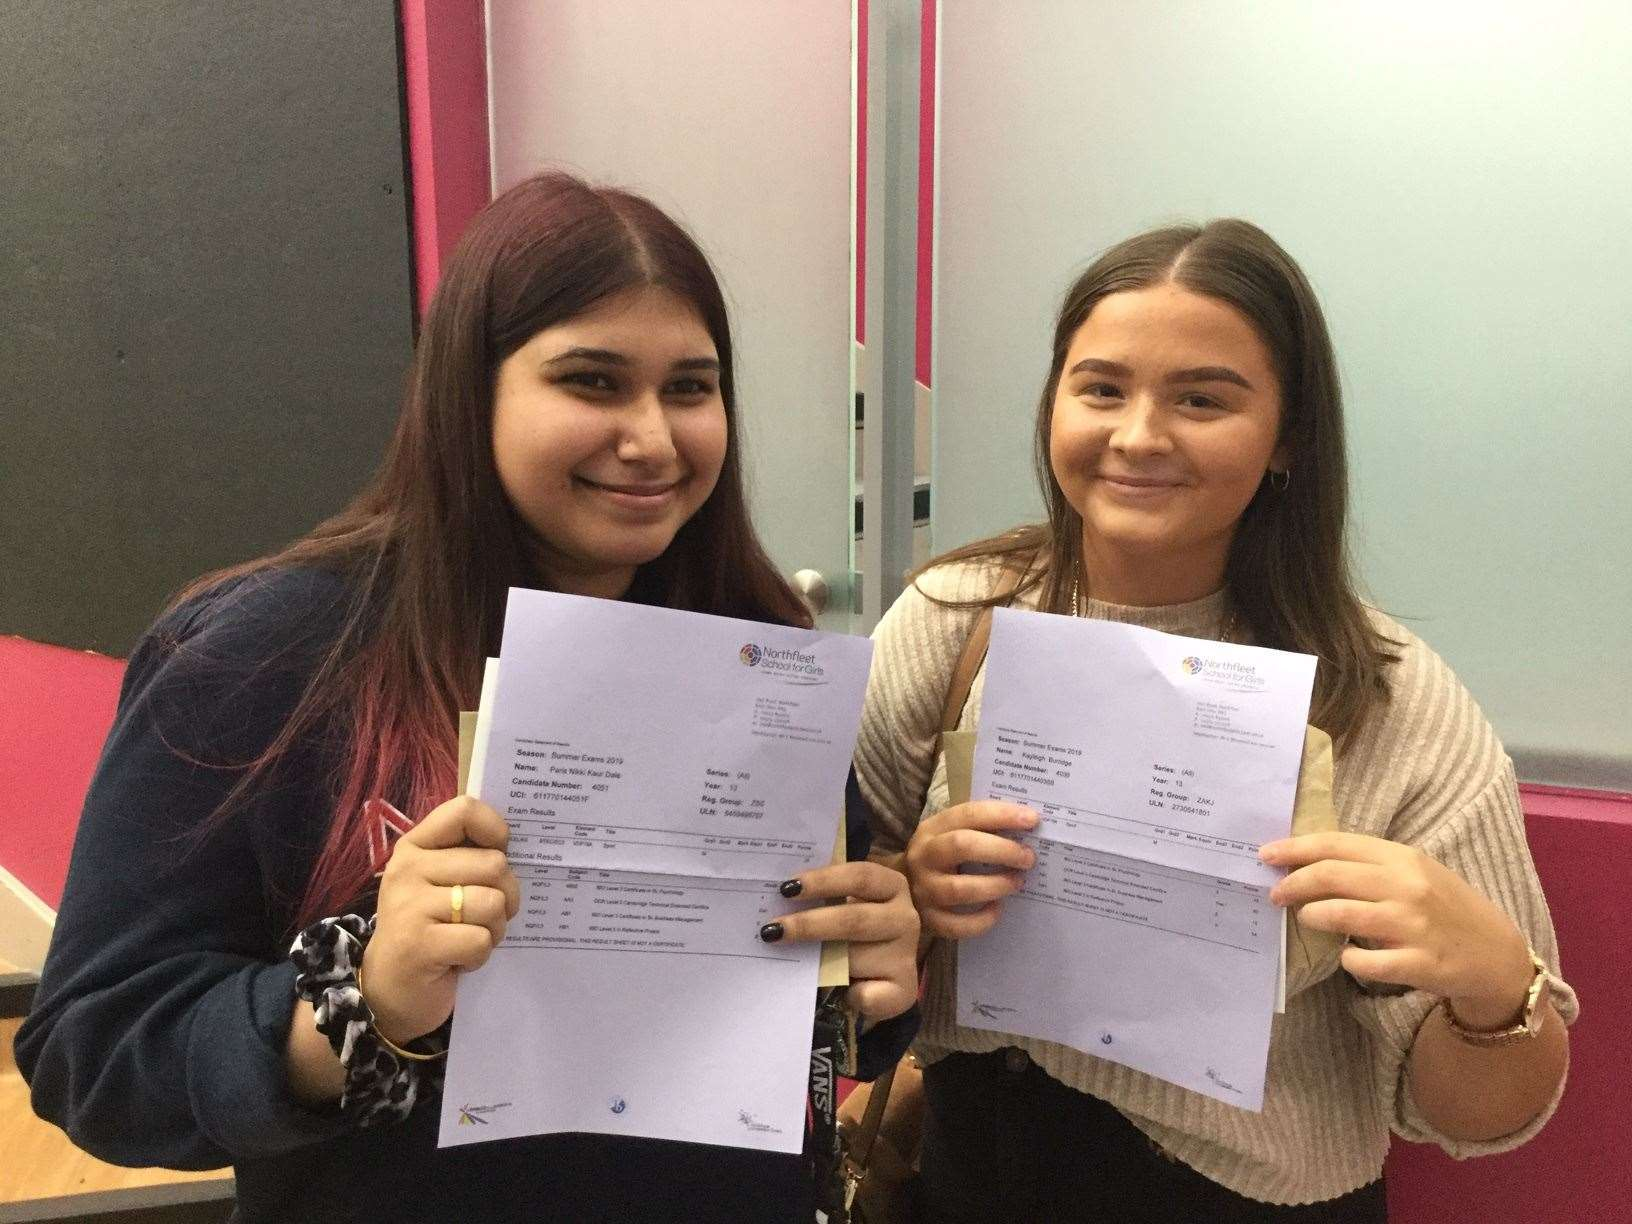 Paris Dale and Kayleigh Burridge from Northfleet School for Girls